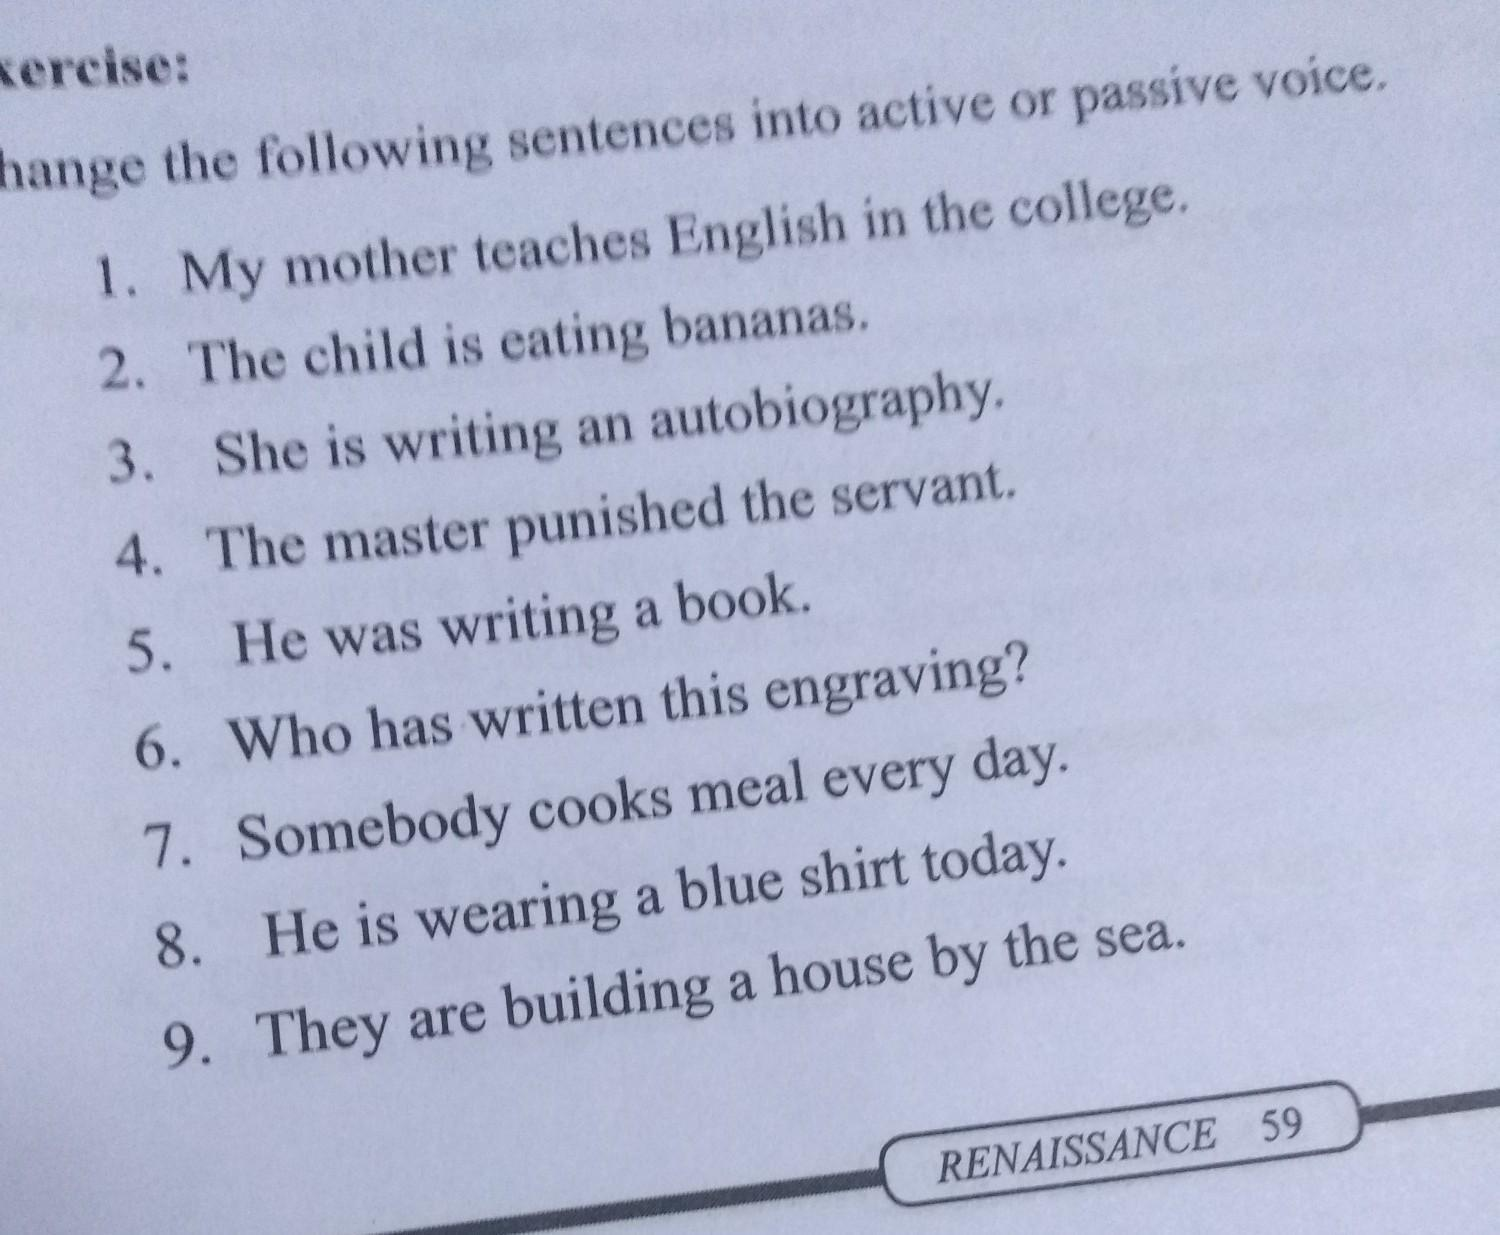 change sentence into active to passive voice - Brainly in